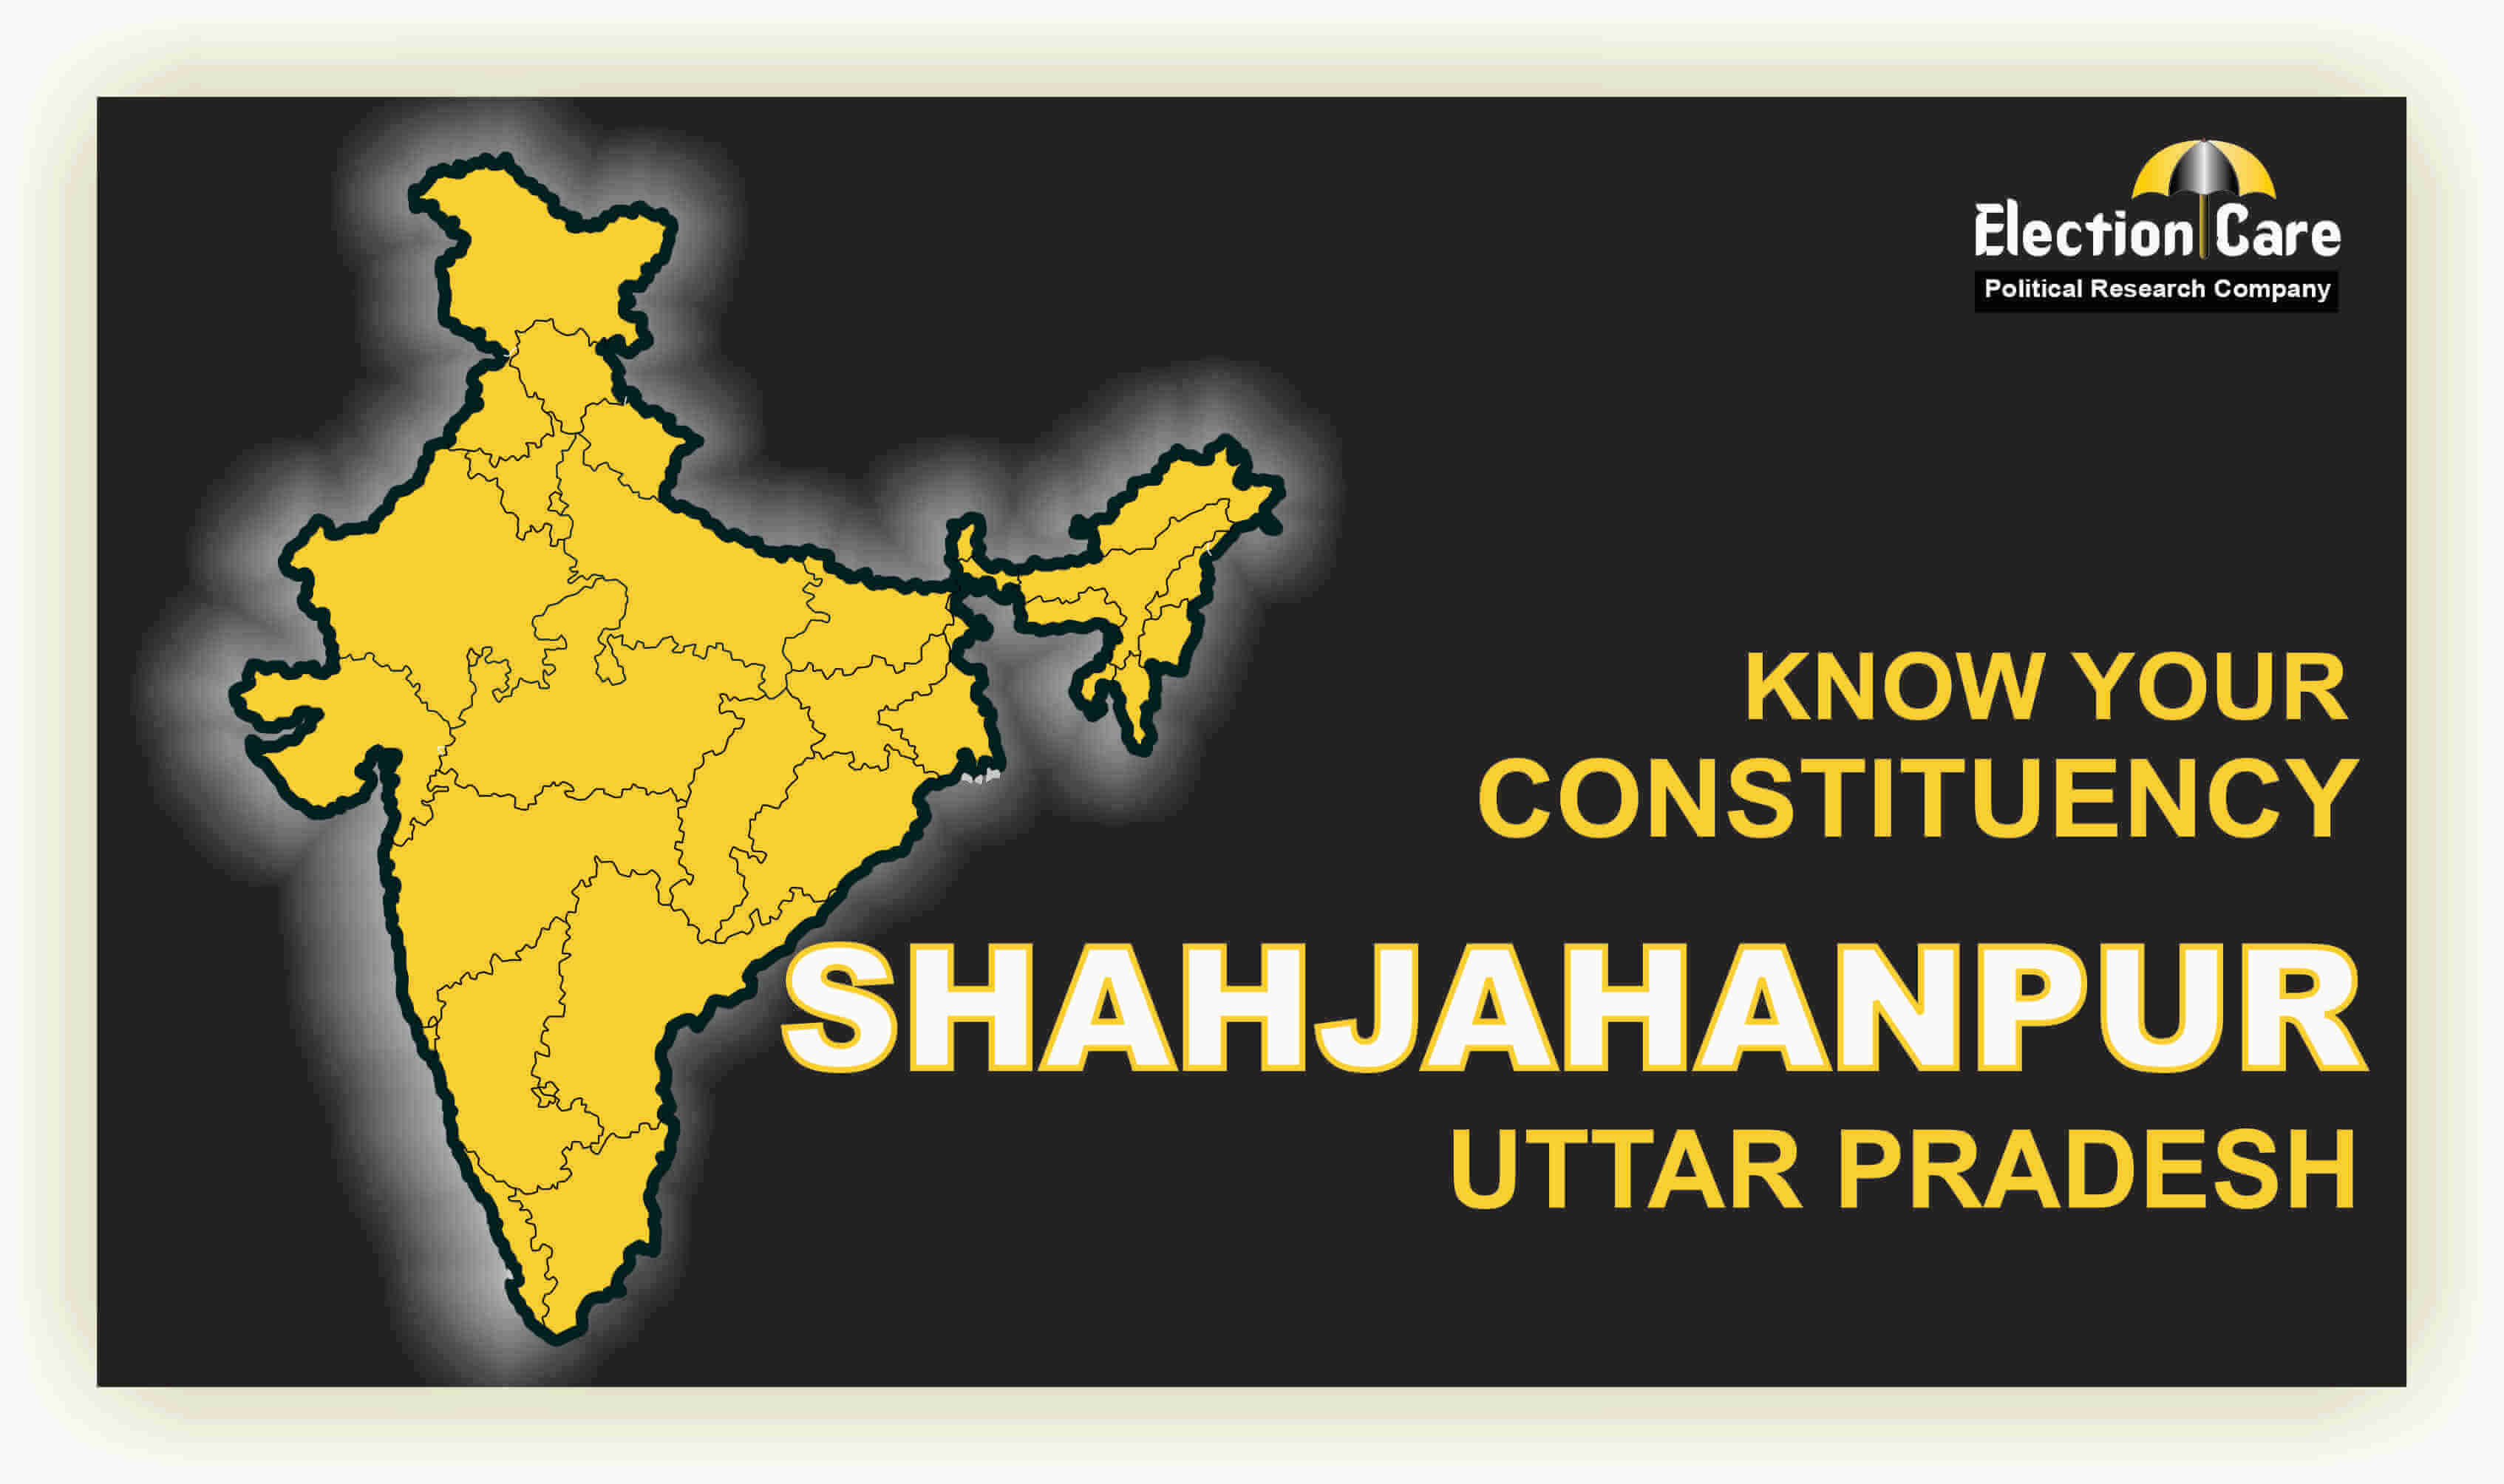 Shahjahanpur Parliament Election Result